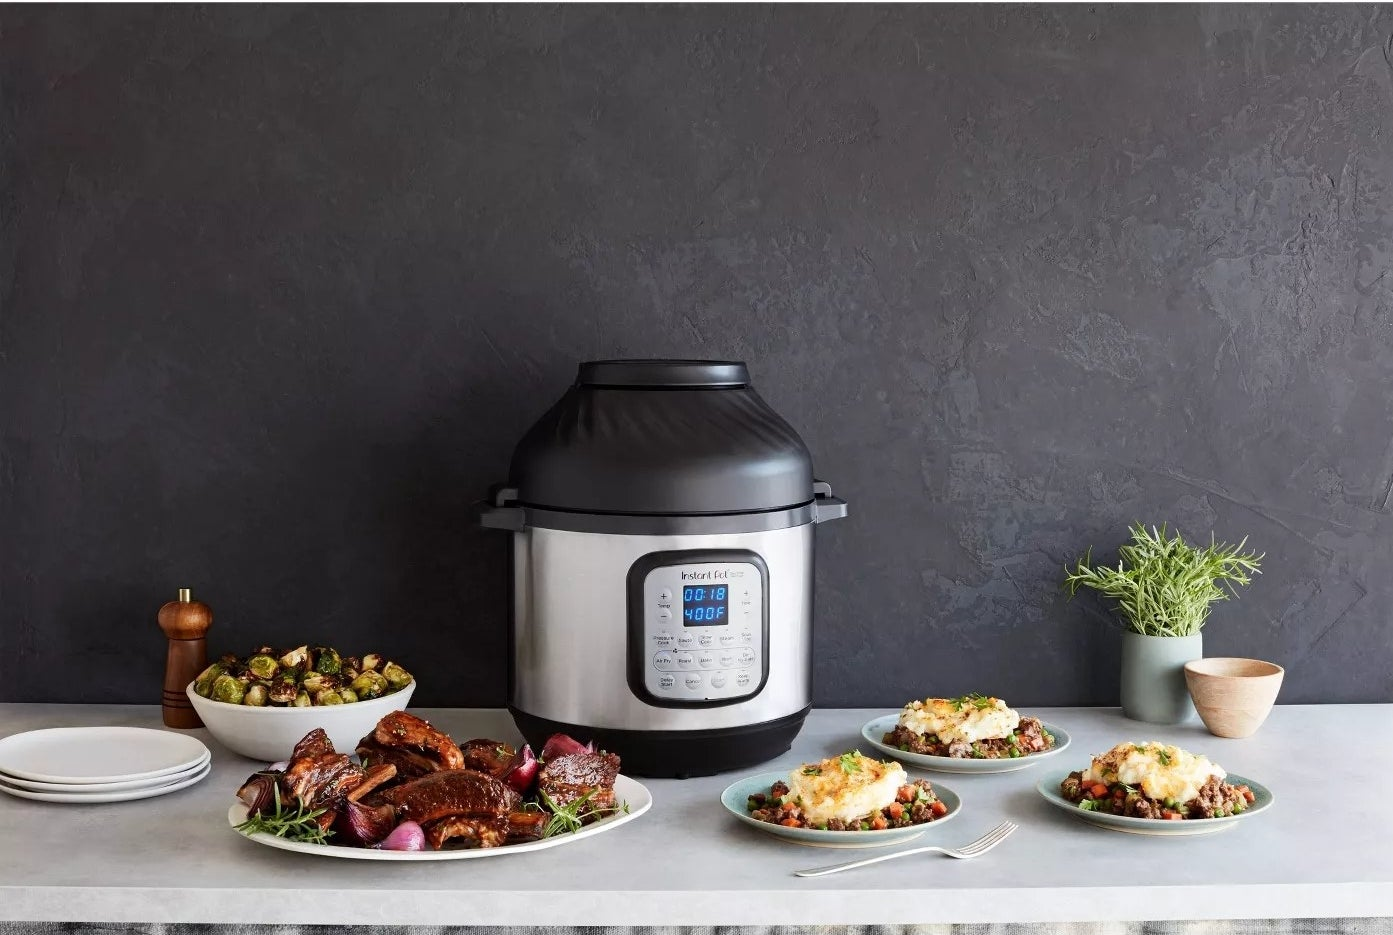 The Instant Pot and air fryer shown next to an entire meal